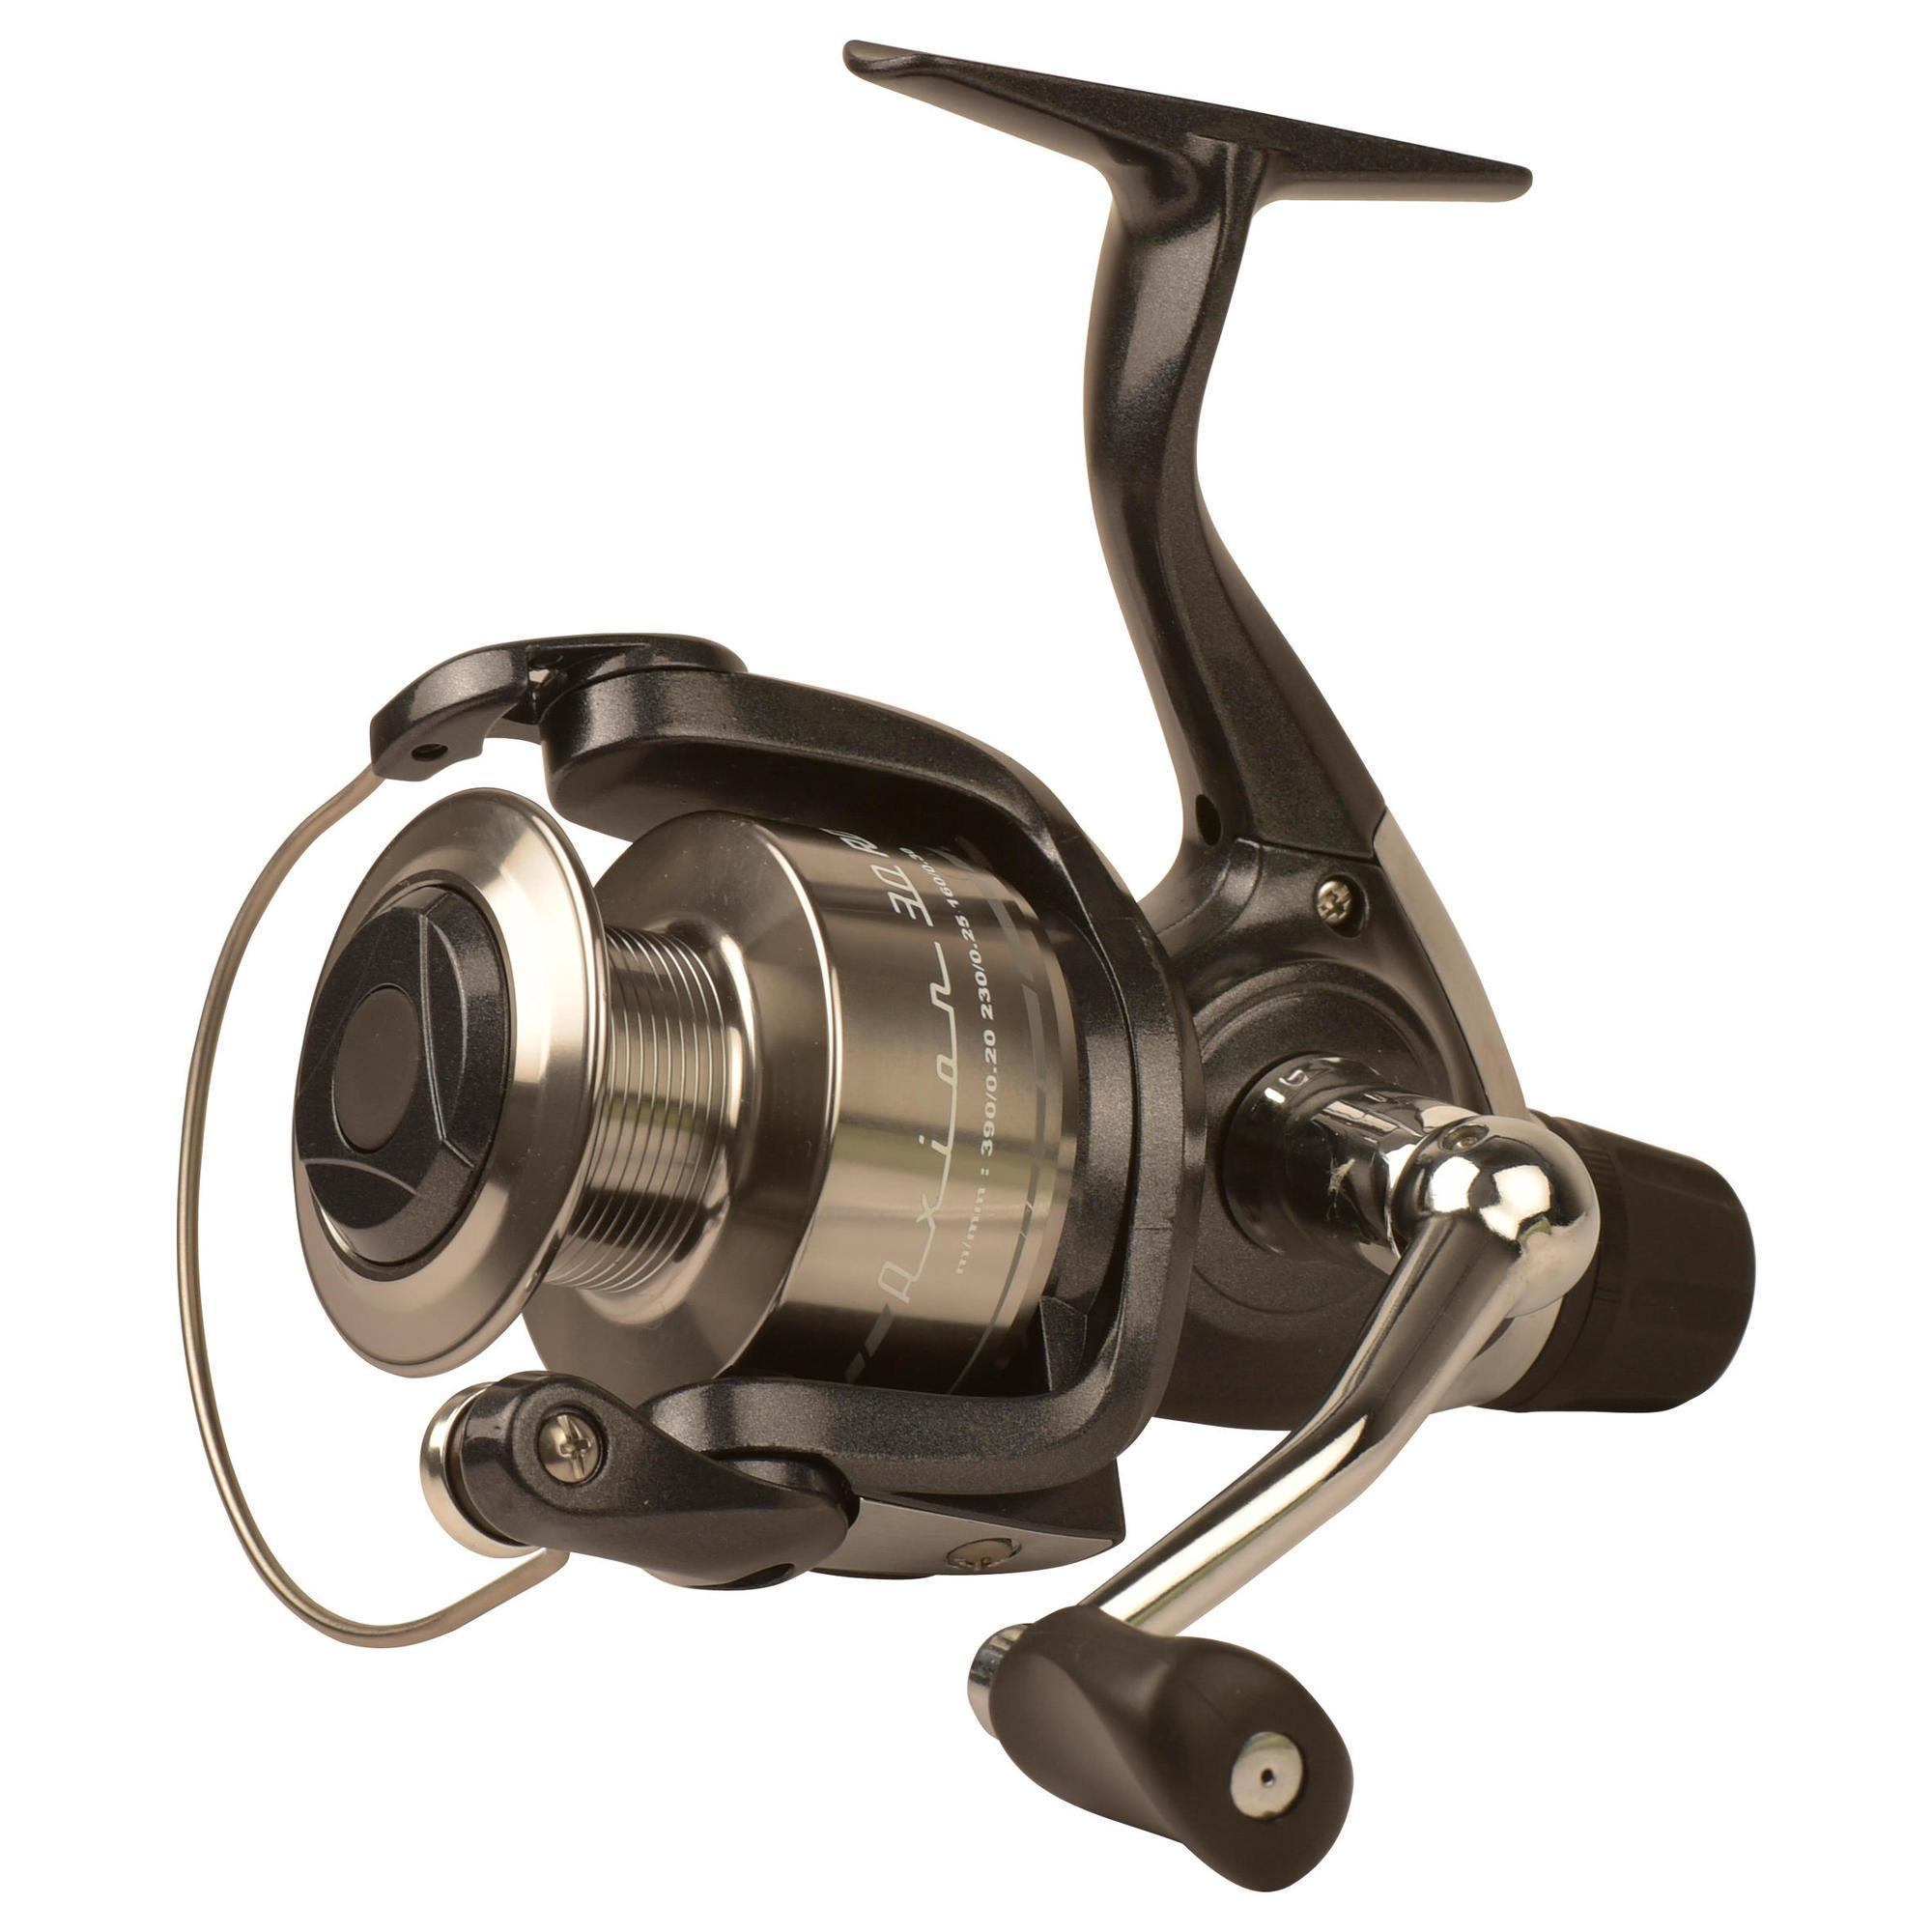 Aliexpress.com : Buy High Quality Spinning Fishing Reel 12